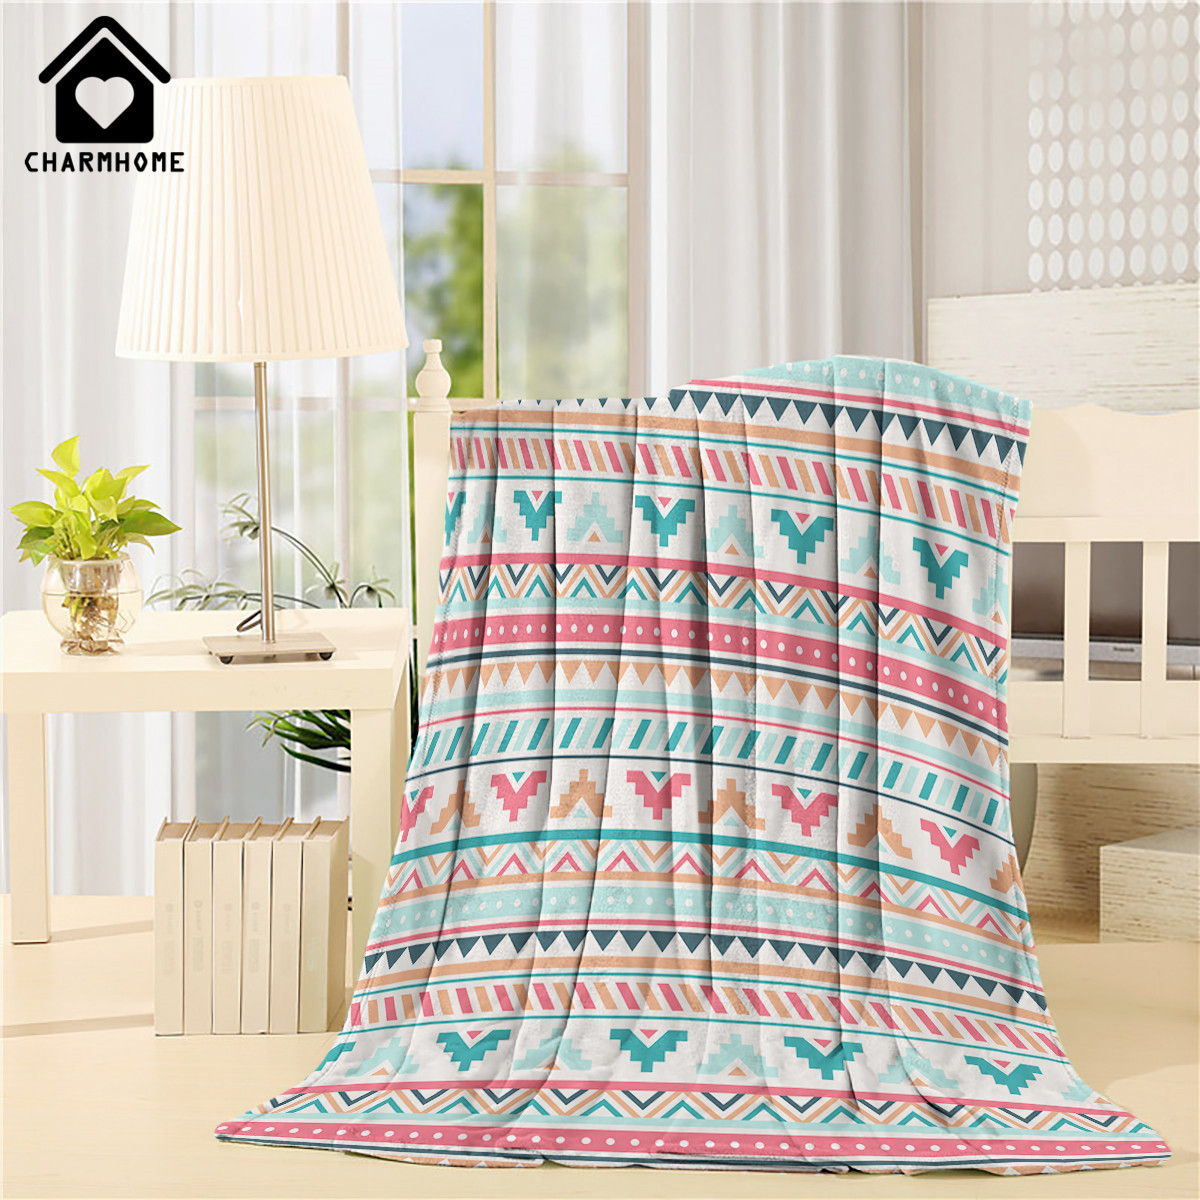 CHARMHOME Bohemia Style Blanket Flannel Fleece Fabric Blanket National Wind Floral Sofa Bed Kid Adult Warm Throw Blanket